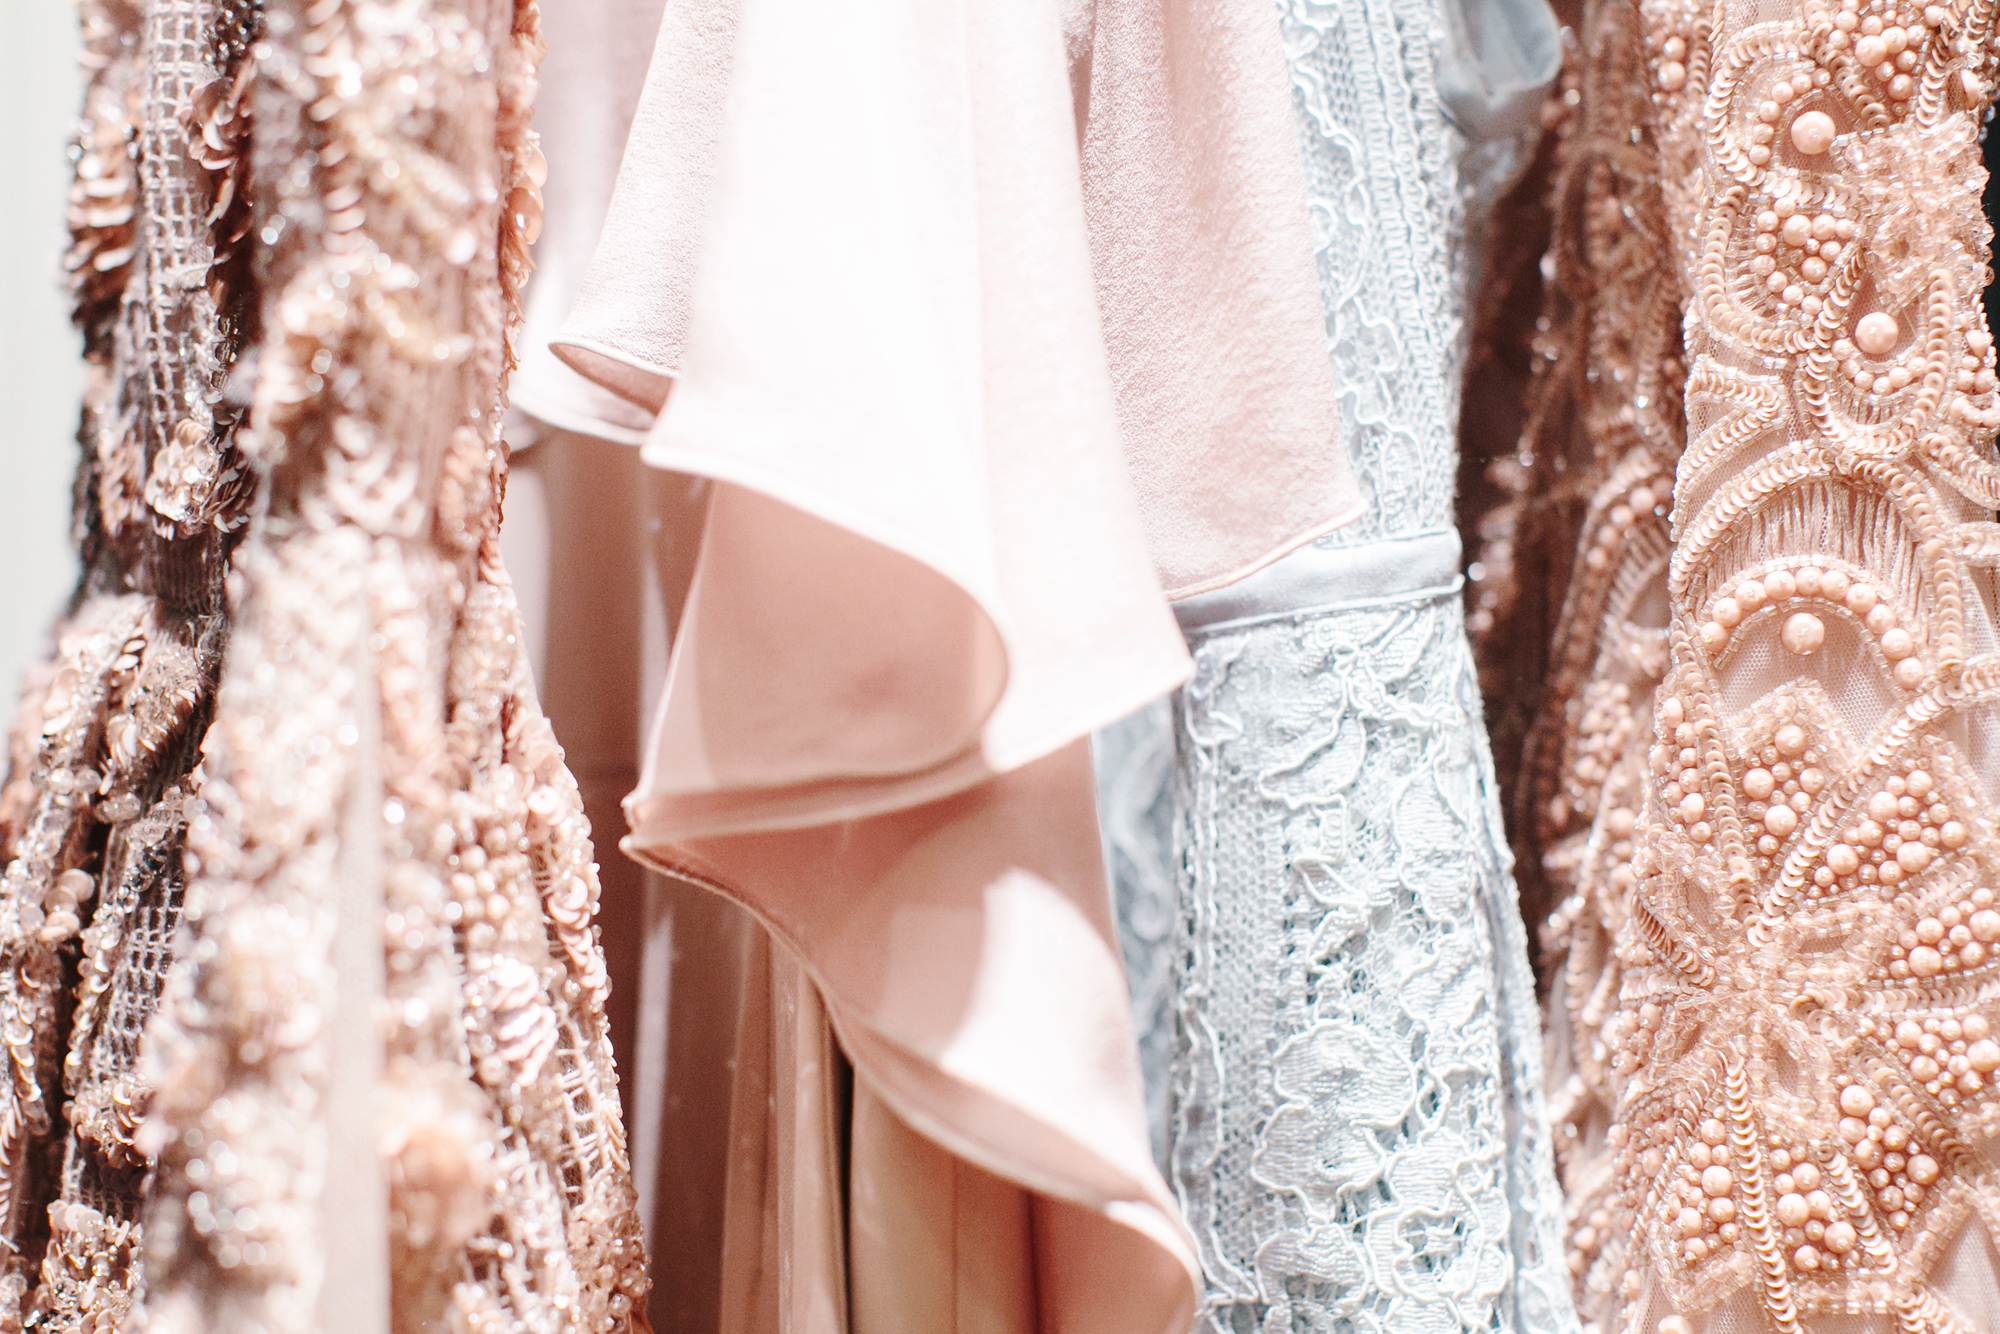 Behind the scenes for Elie Saab's Pre-Fall 2016 shoot